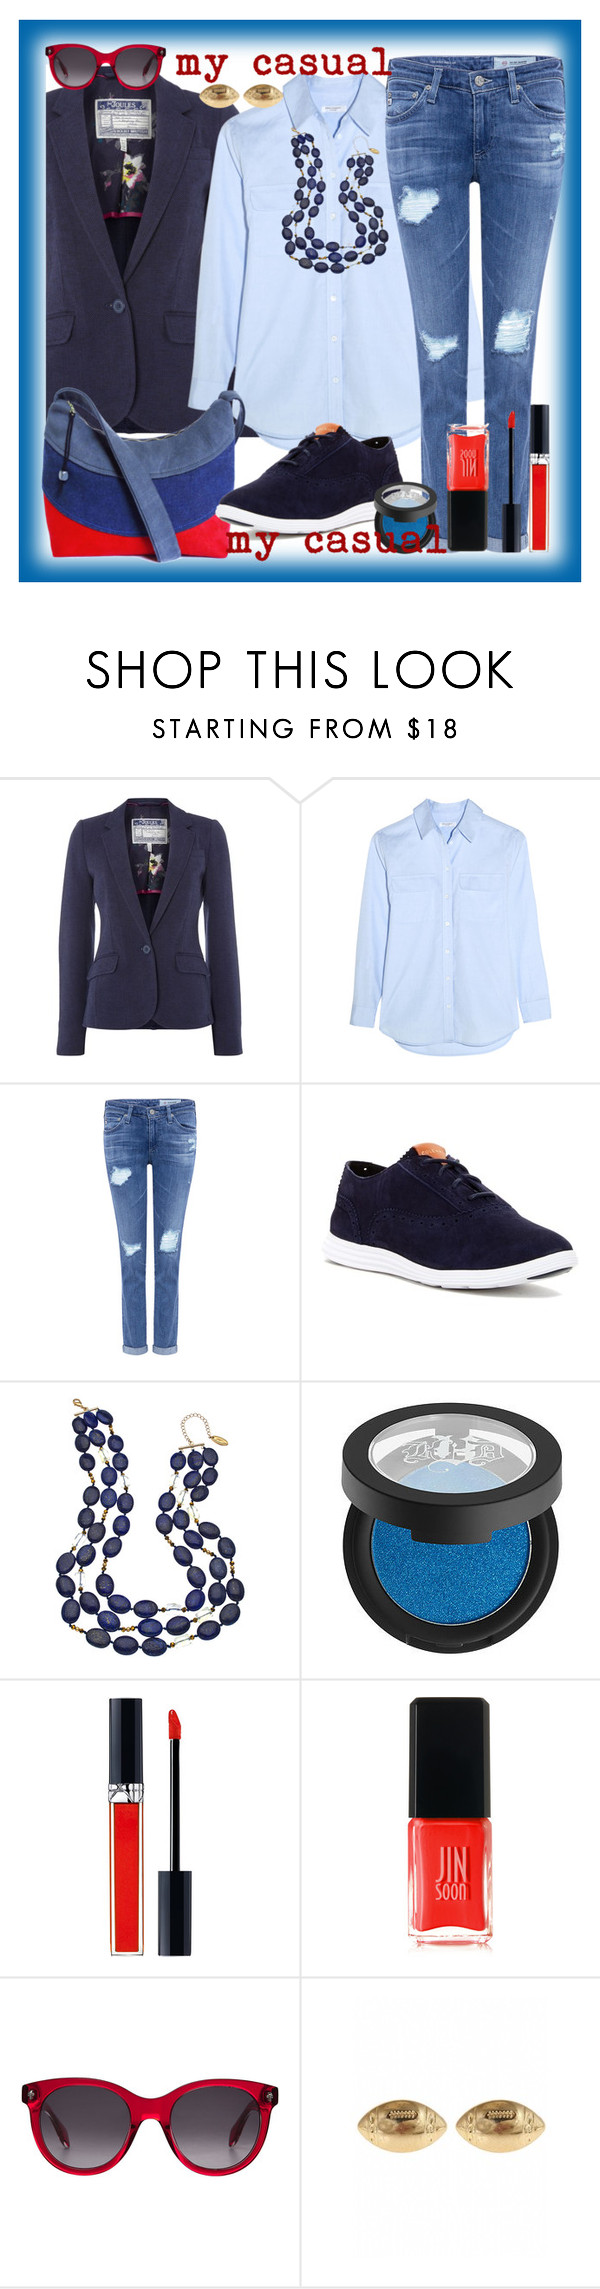 """My casual"" by amisha73 ❤ liked on Polyvore featuring Joules, Equipment, AG Adriano Goldschmied, Cole Haan, Gottex, Kat Von D, Christian Dior, JINsoon, Alexander McQueen and Fornash"